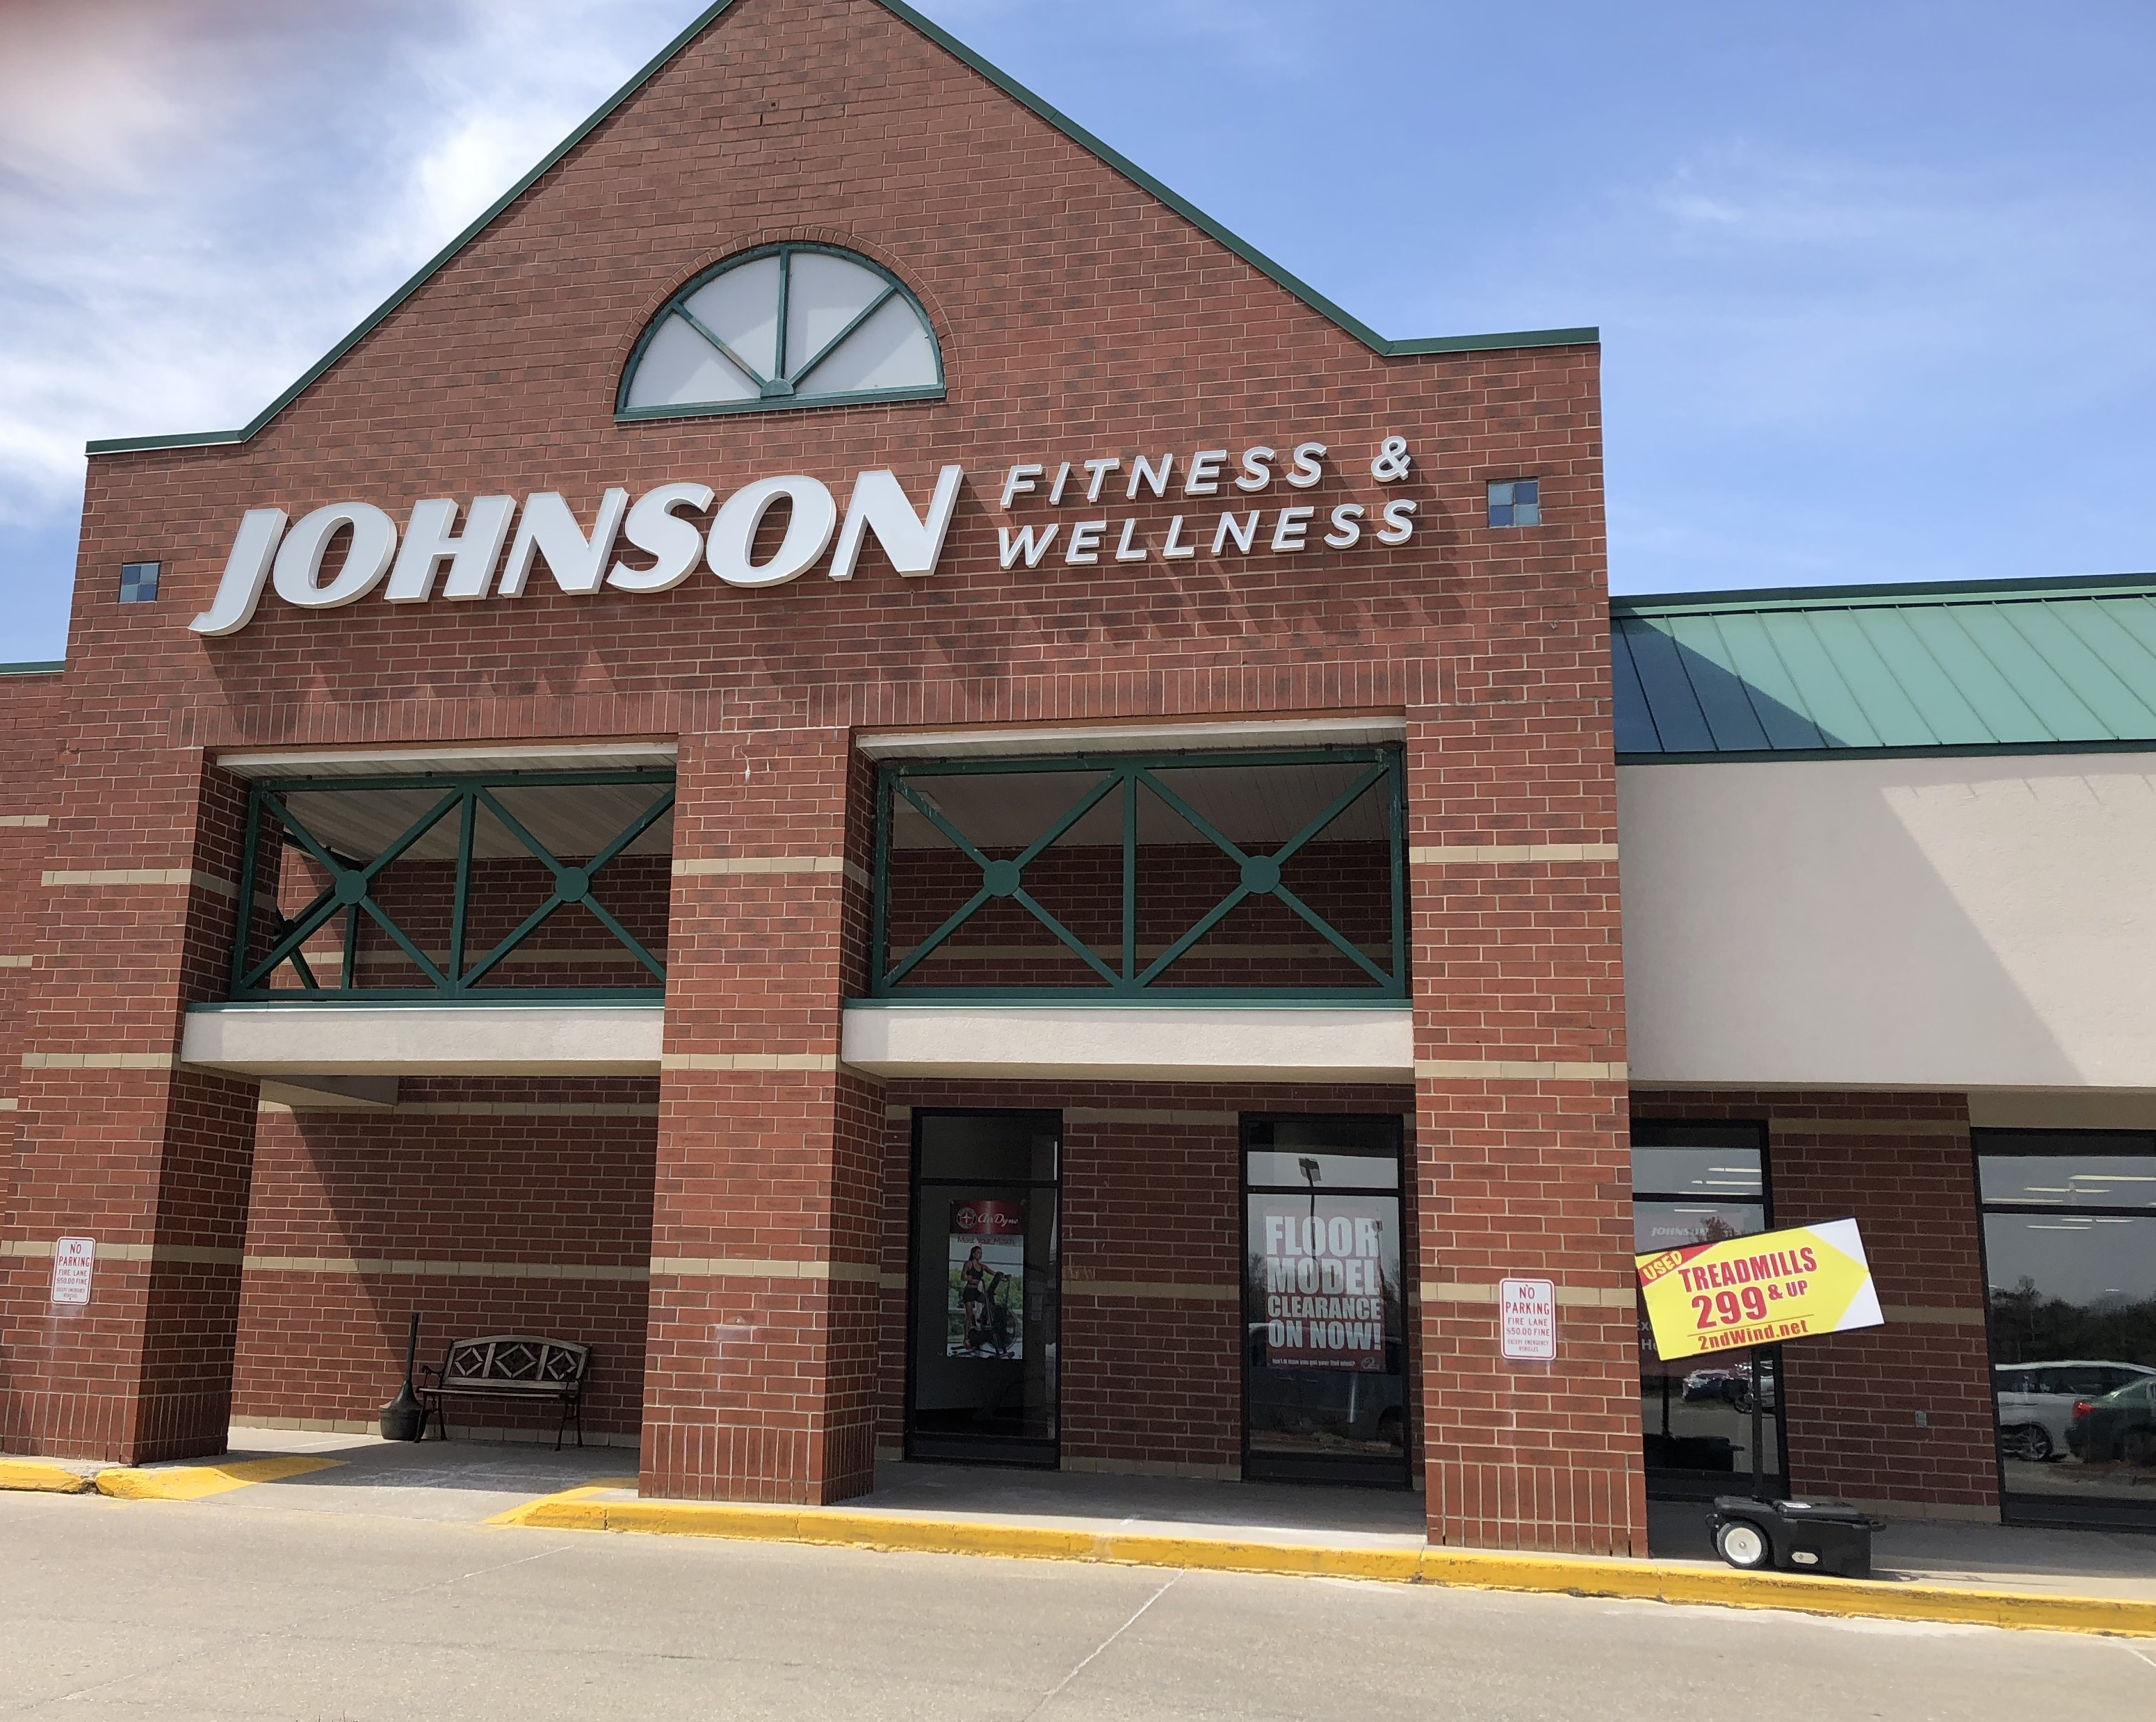 Johnson Fitness & Wellness - Clive, IA